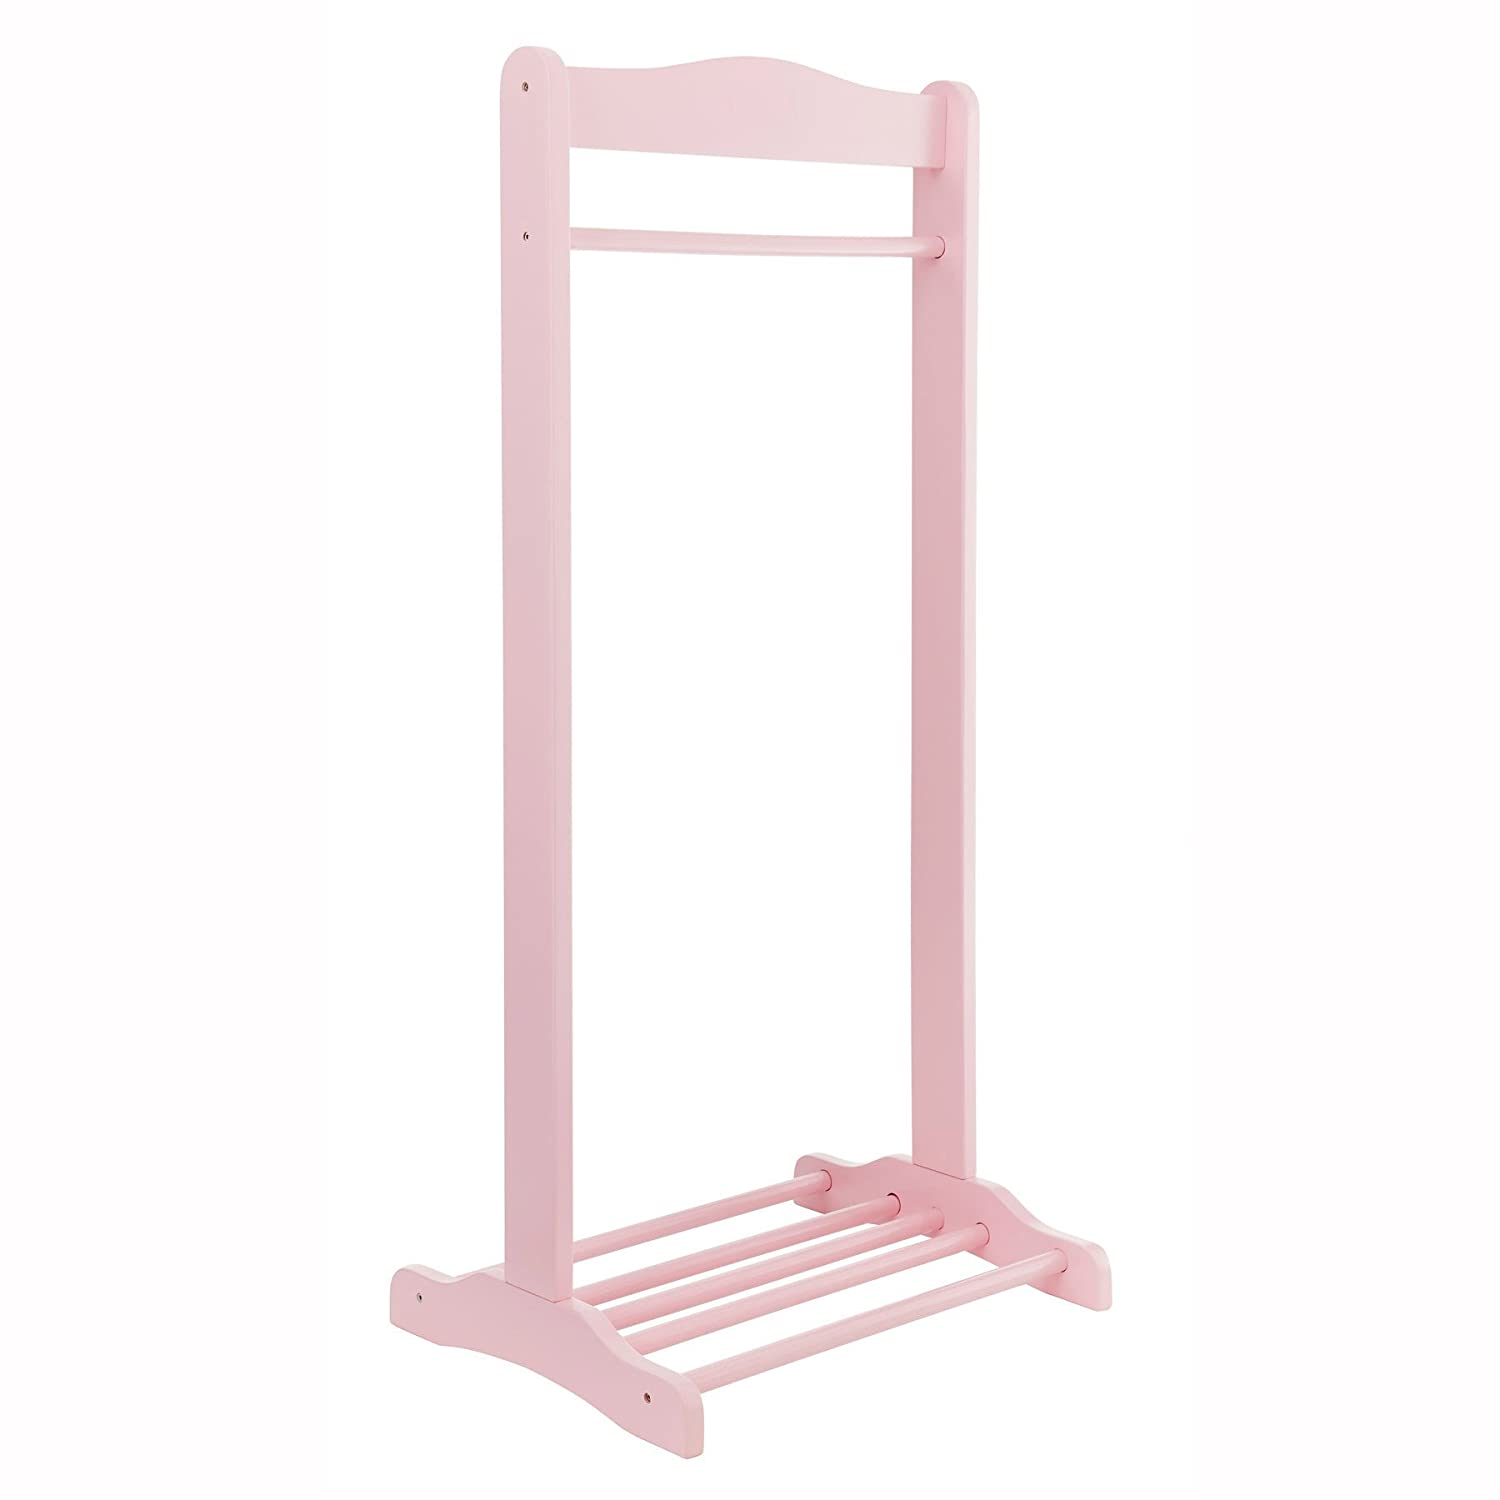 Solo Hanging Rail (Baby Pink) Izziwotnot SOLO-BABYPINK